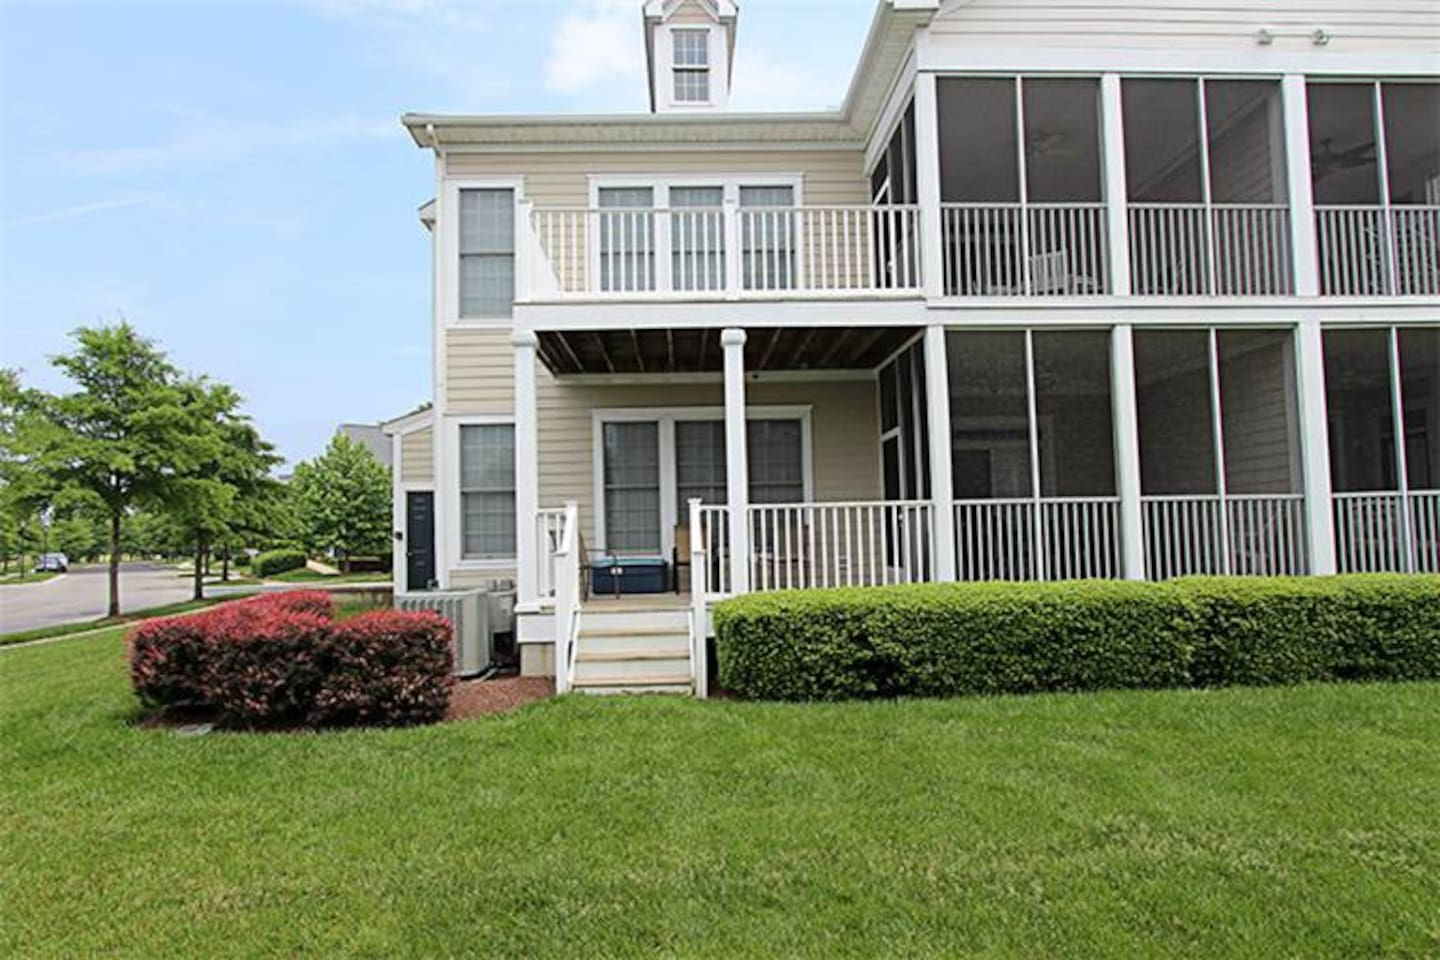 exterior - 1st floor condo - great porches - no steps at front door. 3rd porch on other side of unit, too.